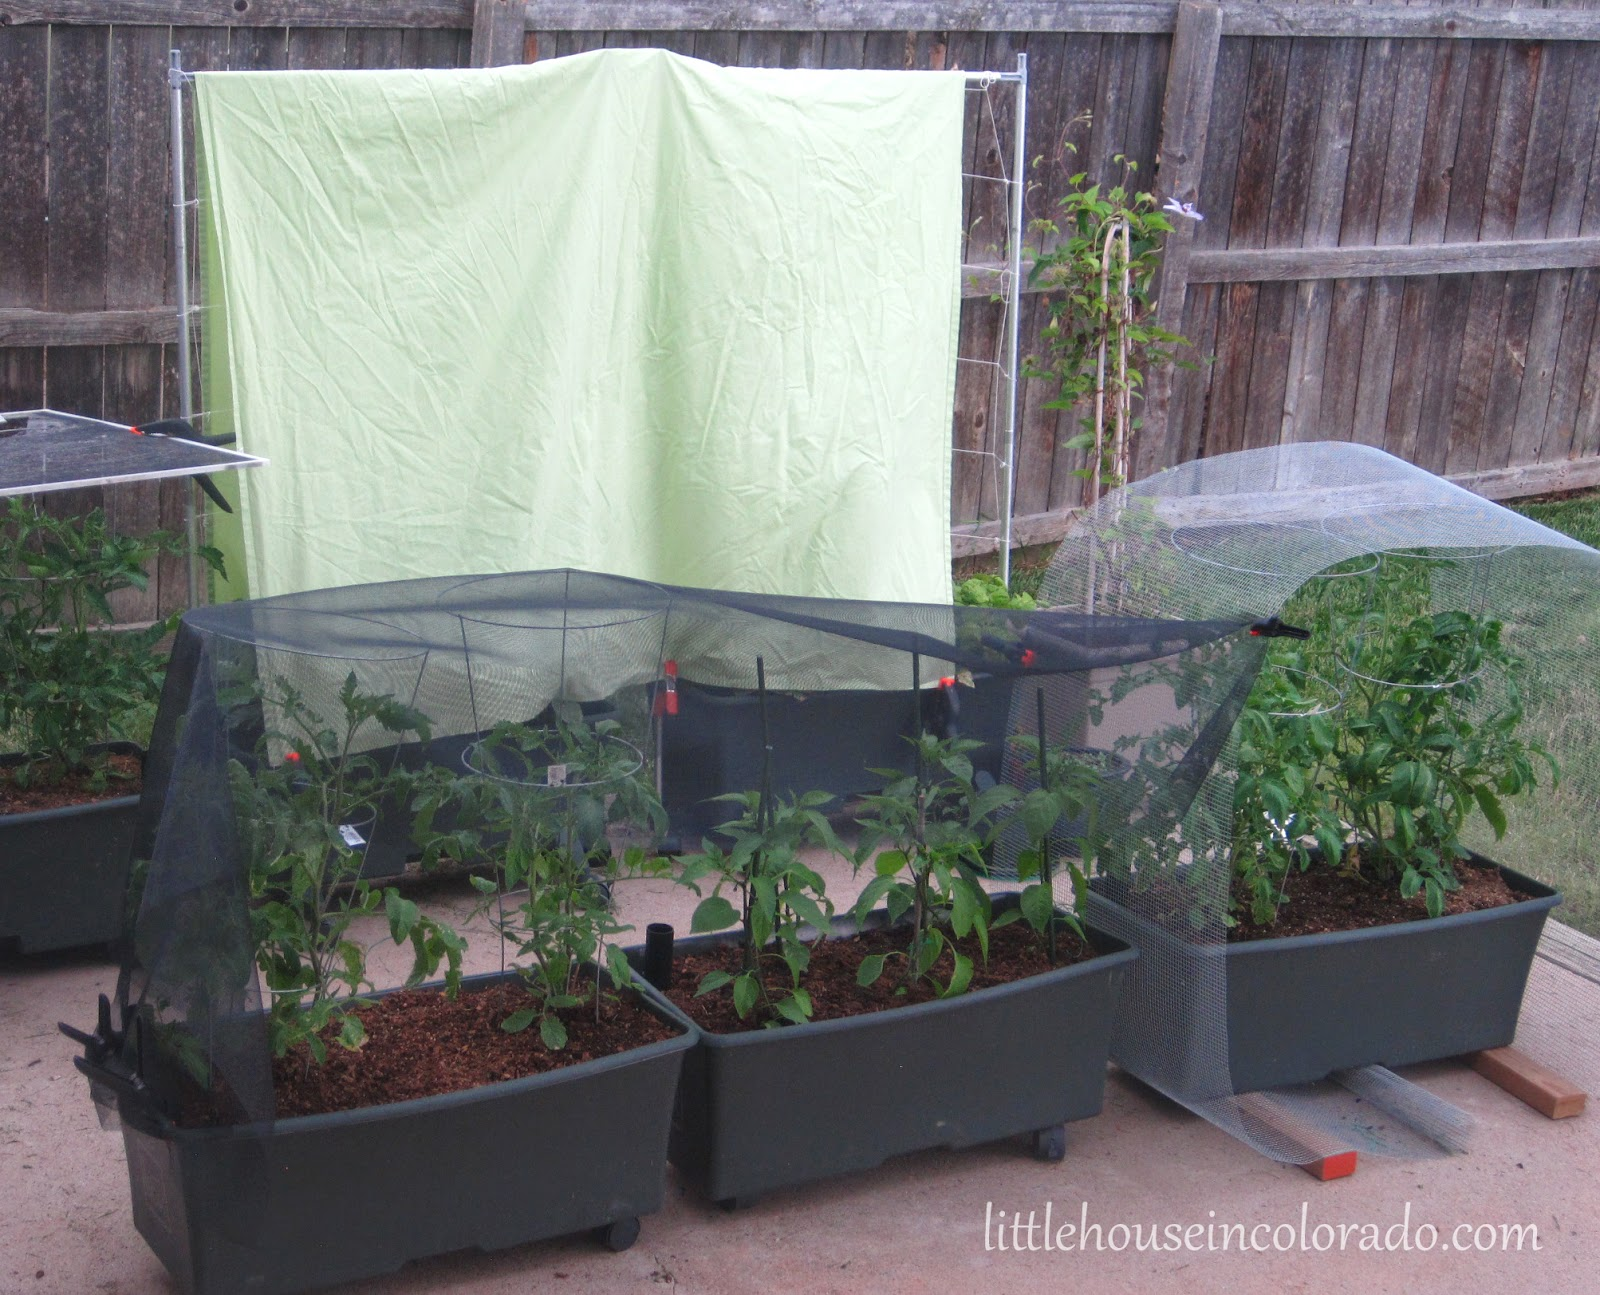 We Had Old Screens Clamped To Tomato Cages, Replacement Window Screening  Draped Over More Tomatoes And Peppers, A Bed Sheet Covering The Cucumbers  And A 10 ...